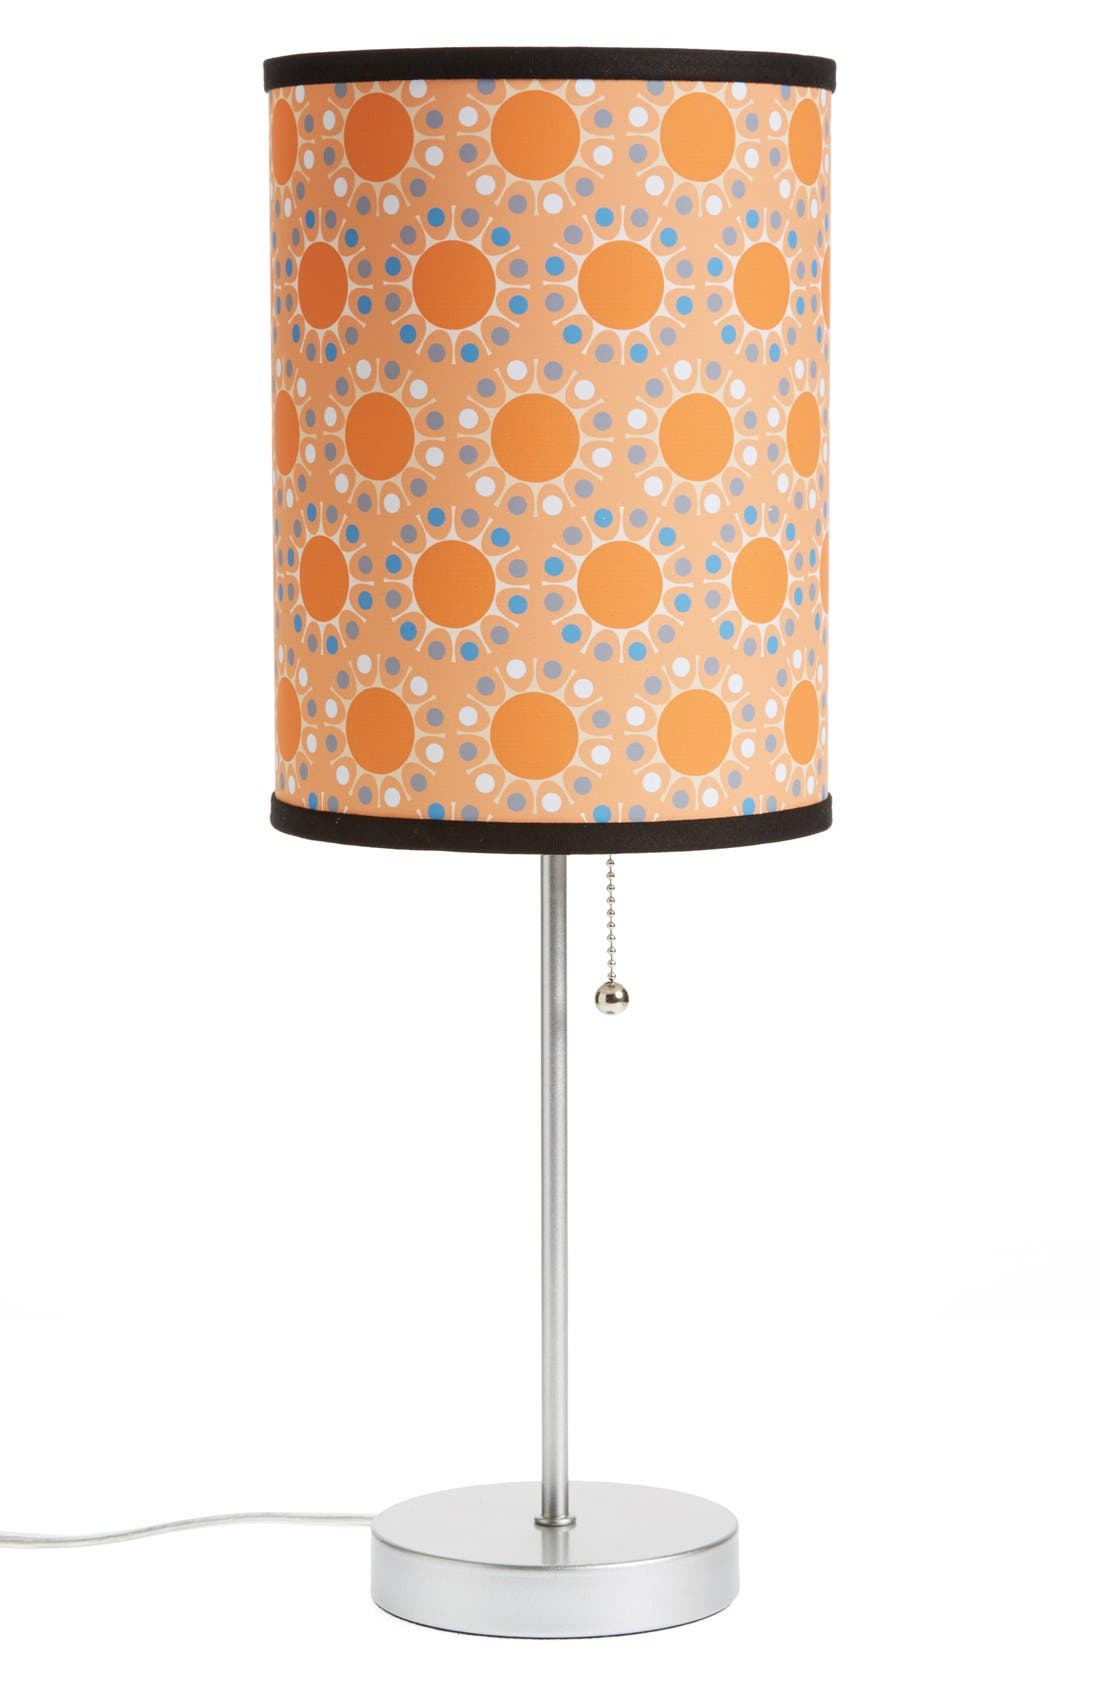 Alternate Image 1 Selected - LAMP-IN-A-BOX Retro Floral Table Lamp